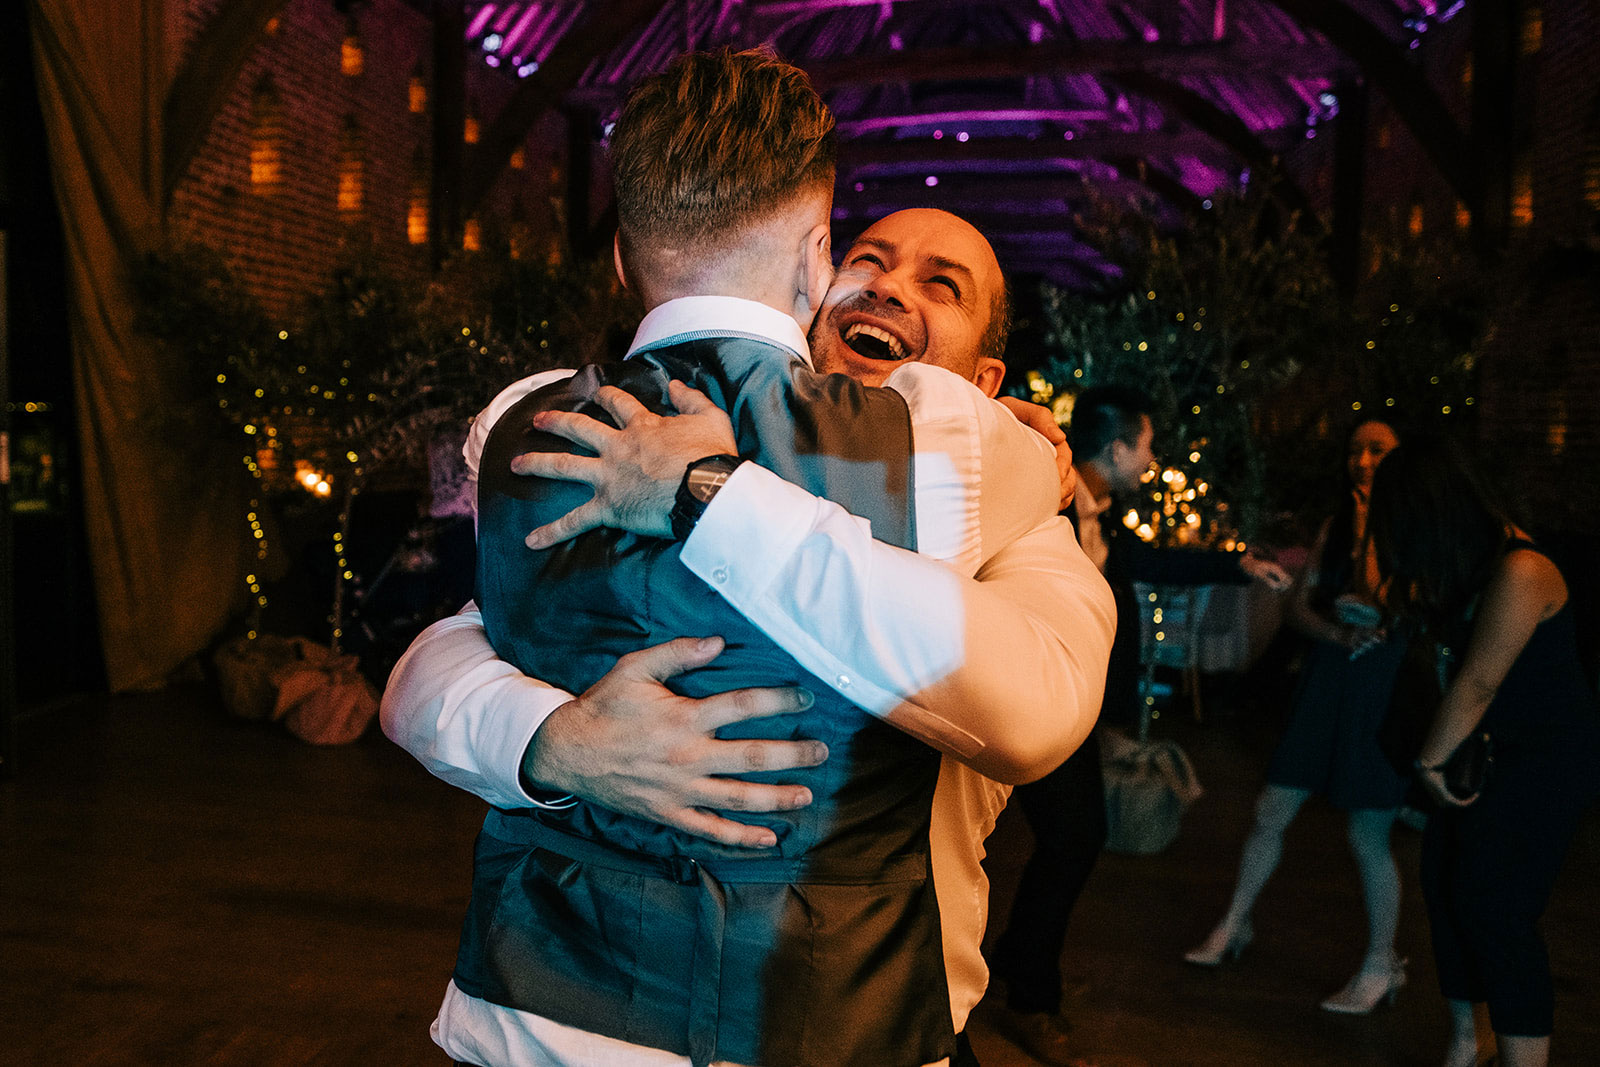 Jack hugs one of his friends on the dance floor